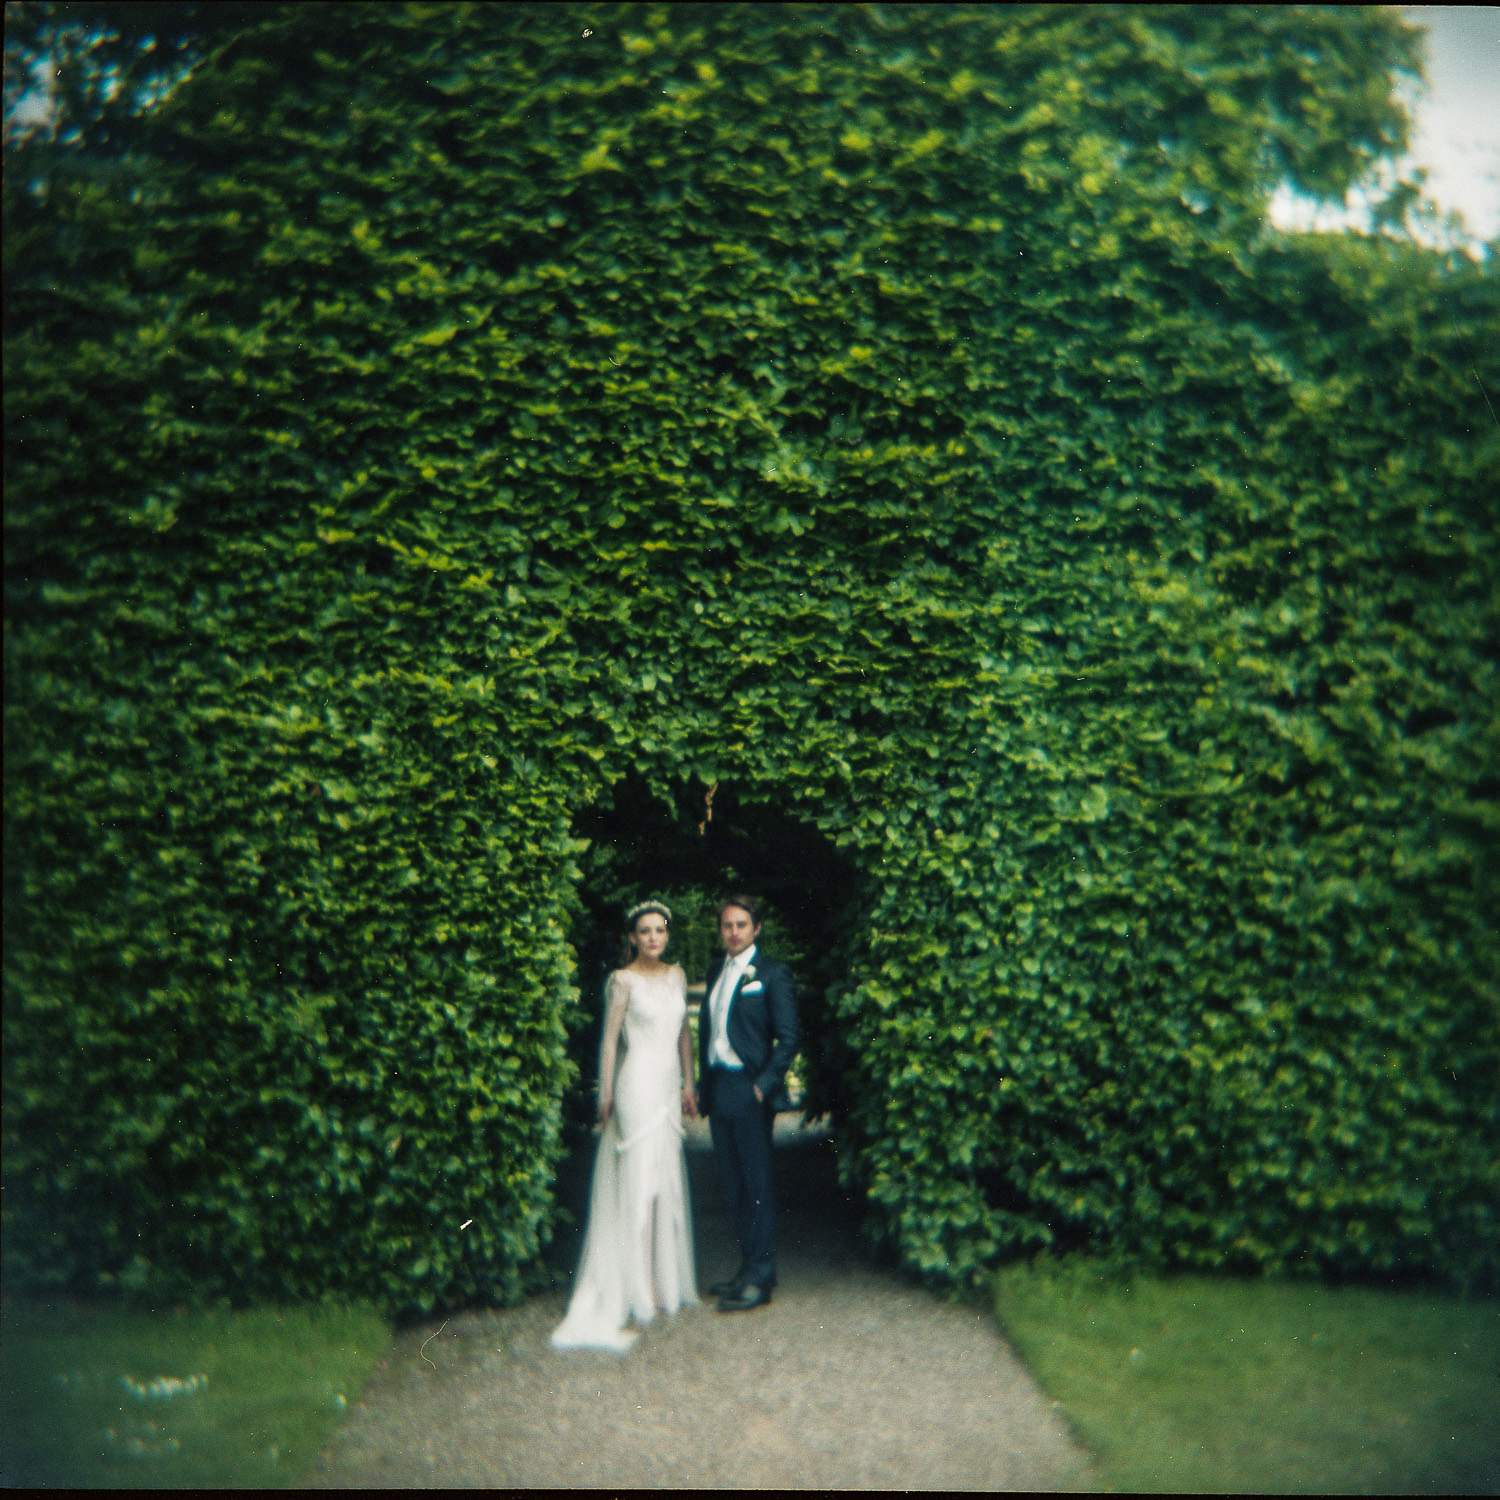 holga film wedding photographer